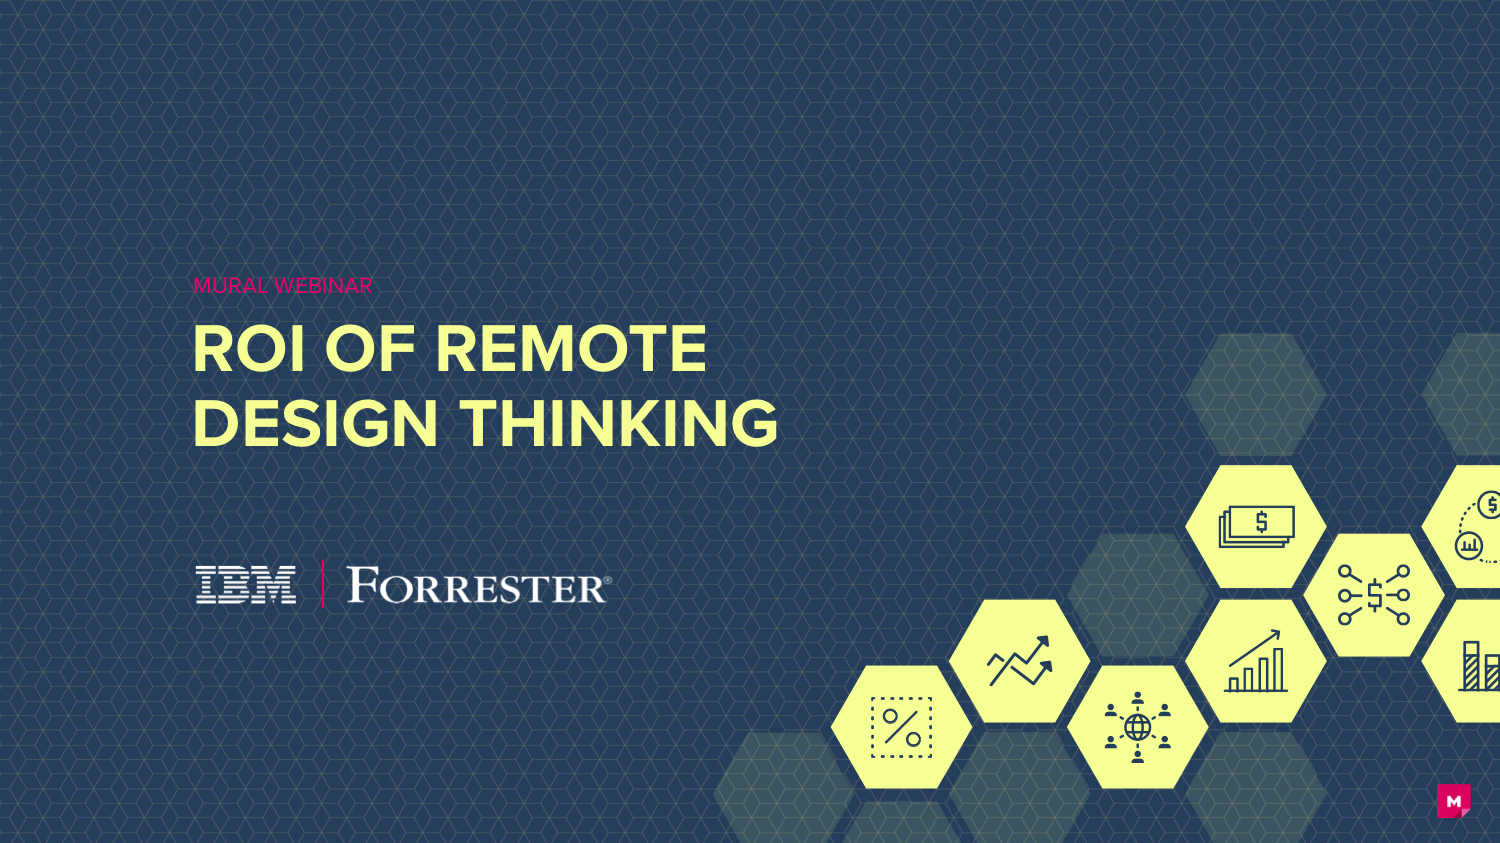 Webinar: ROI of Remote Design Thinking